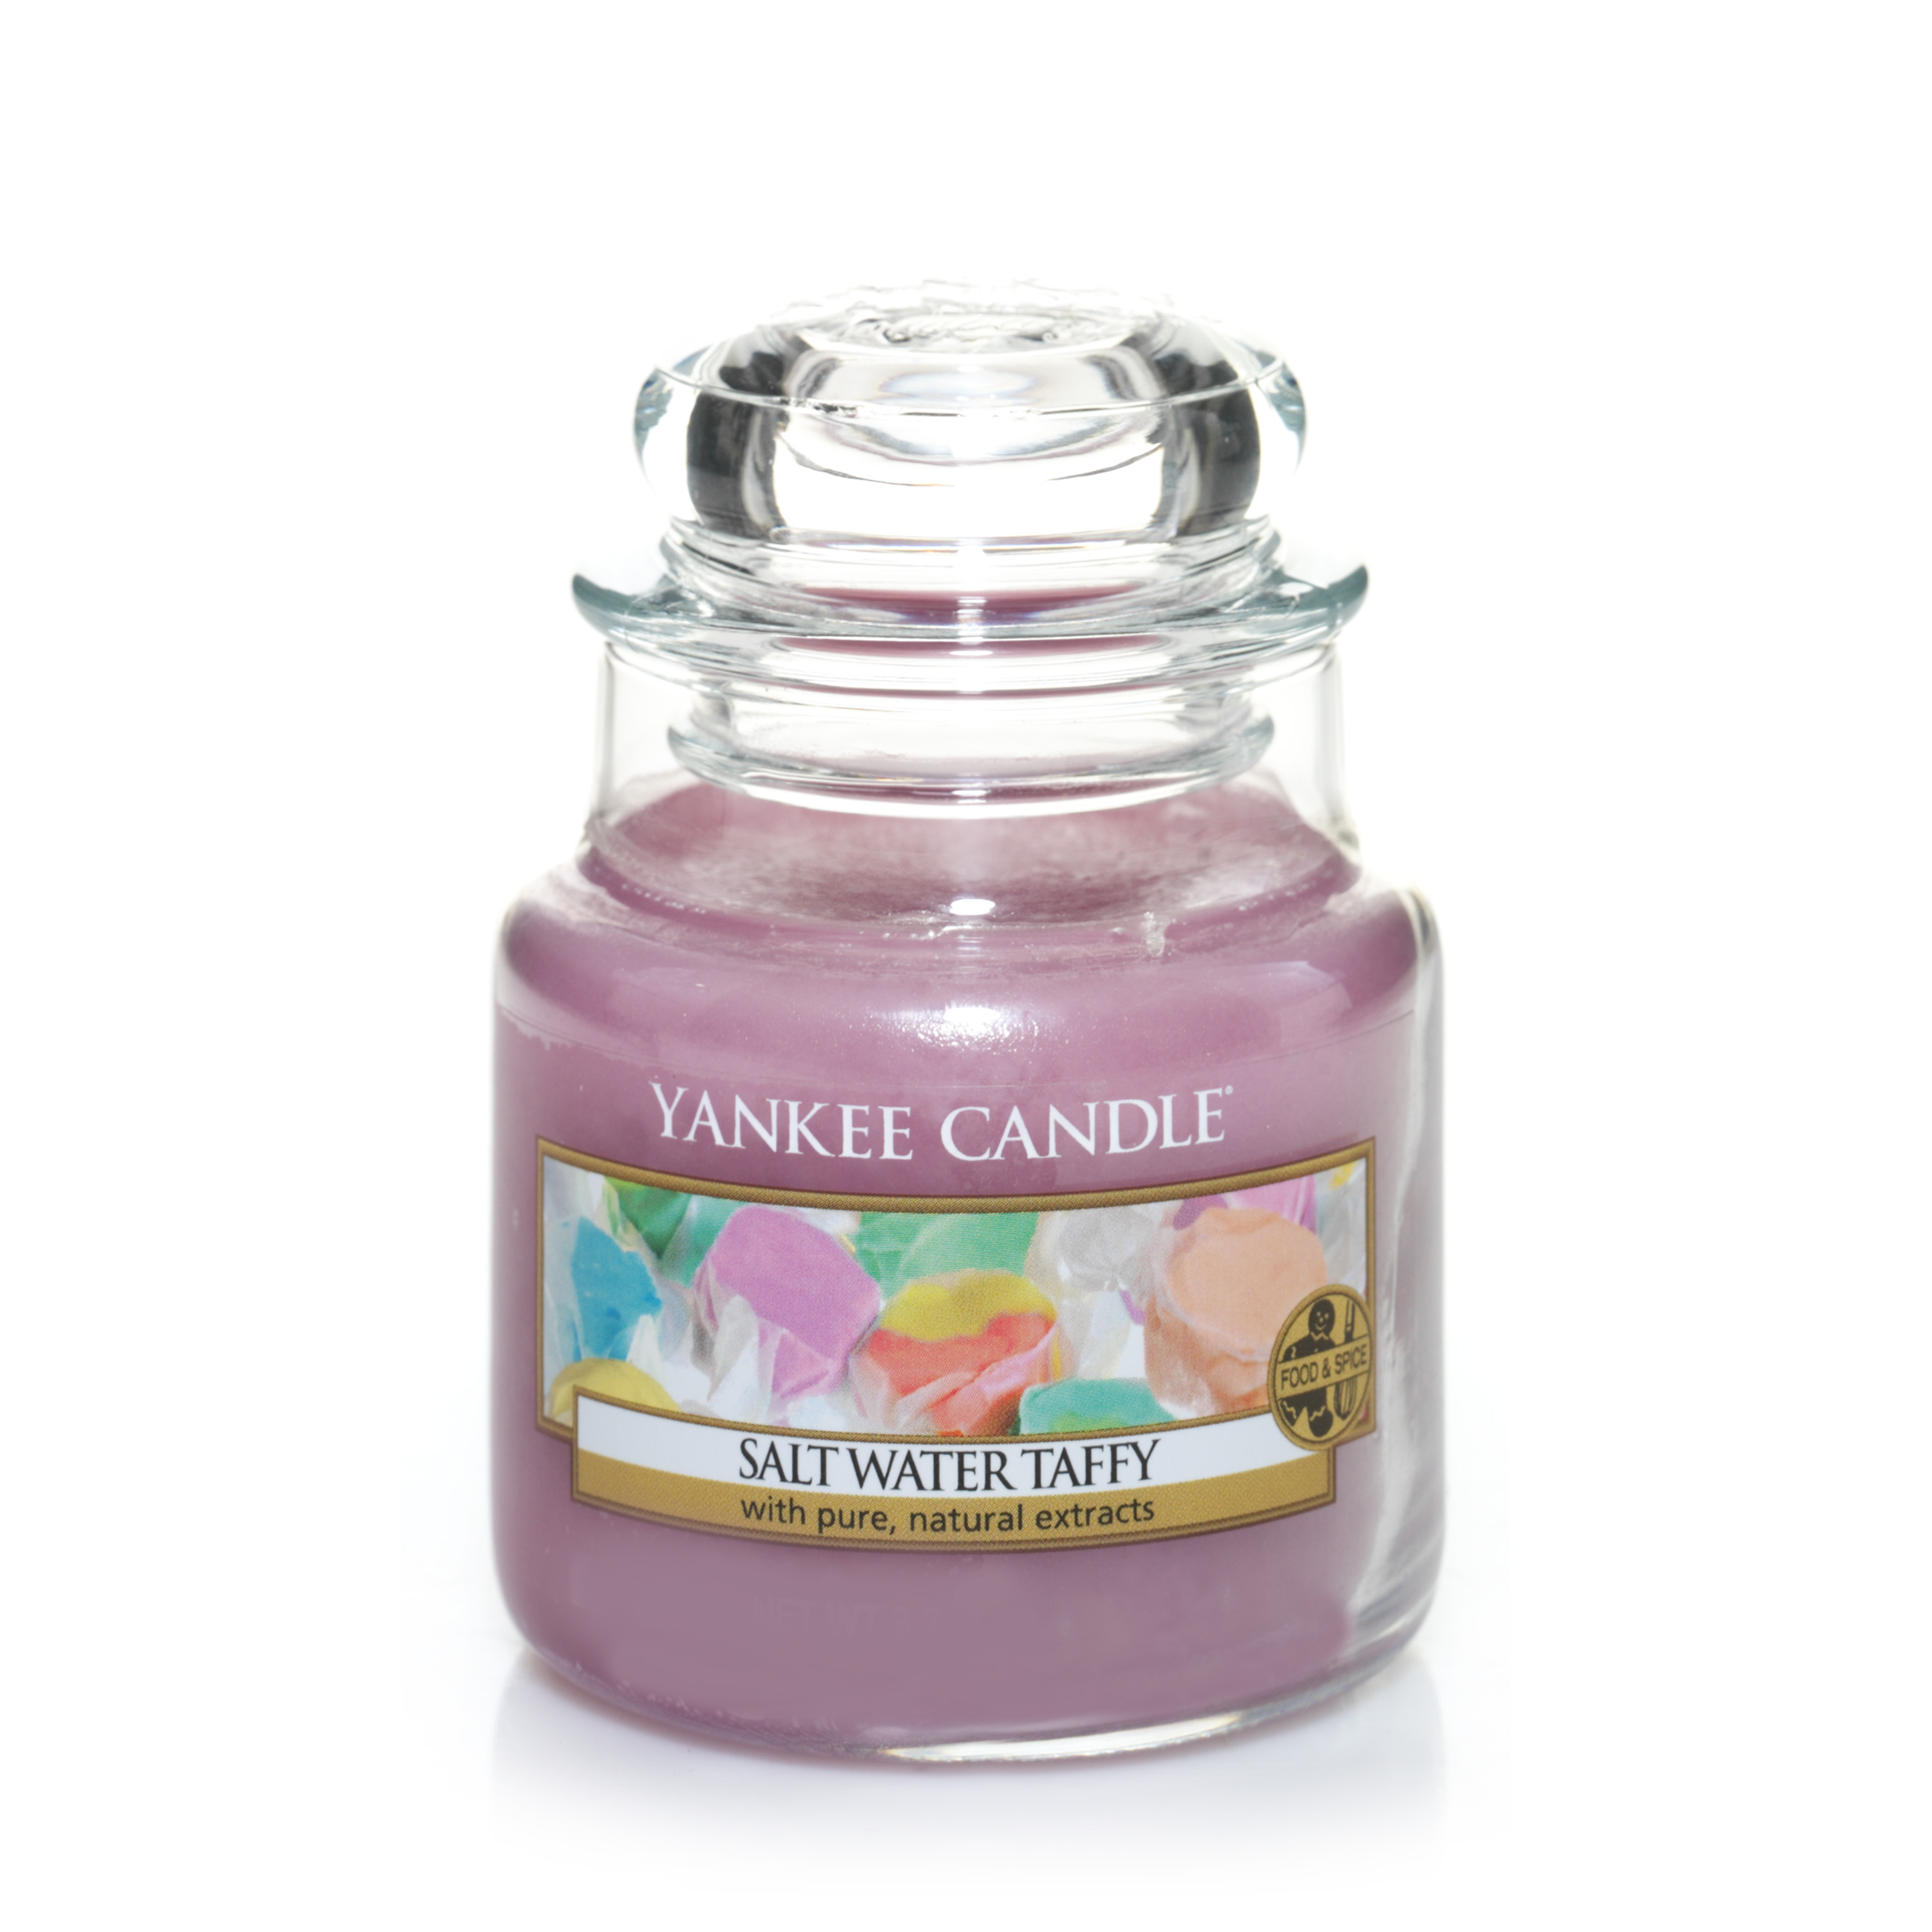 Salt Water Taffy Candle